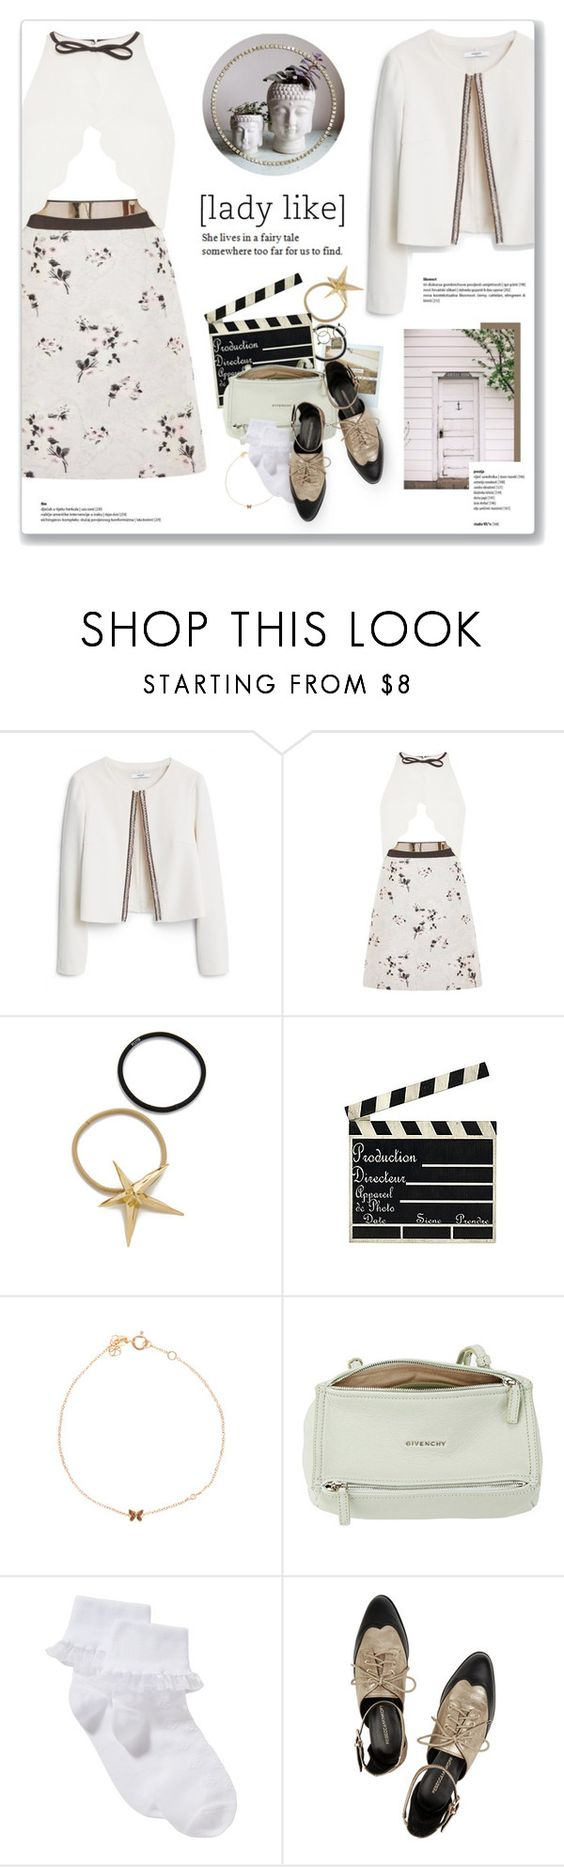 """Brick By Boring Brick, Paramore"" by blendasantos ❤ liked on Polyvore featuring MANGO, Giambattista Valli, Pluie, Sydney Evan, Givenchy, John Lewis, Rebecca Minkoff, Chanel, holiday and holidaystyle"